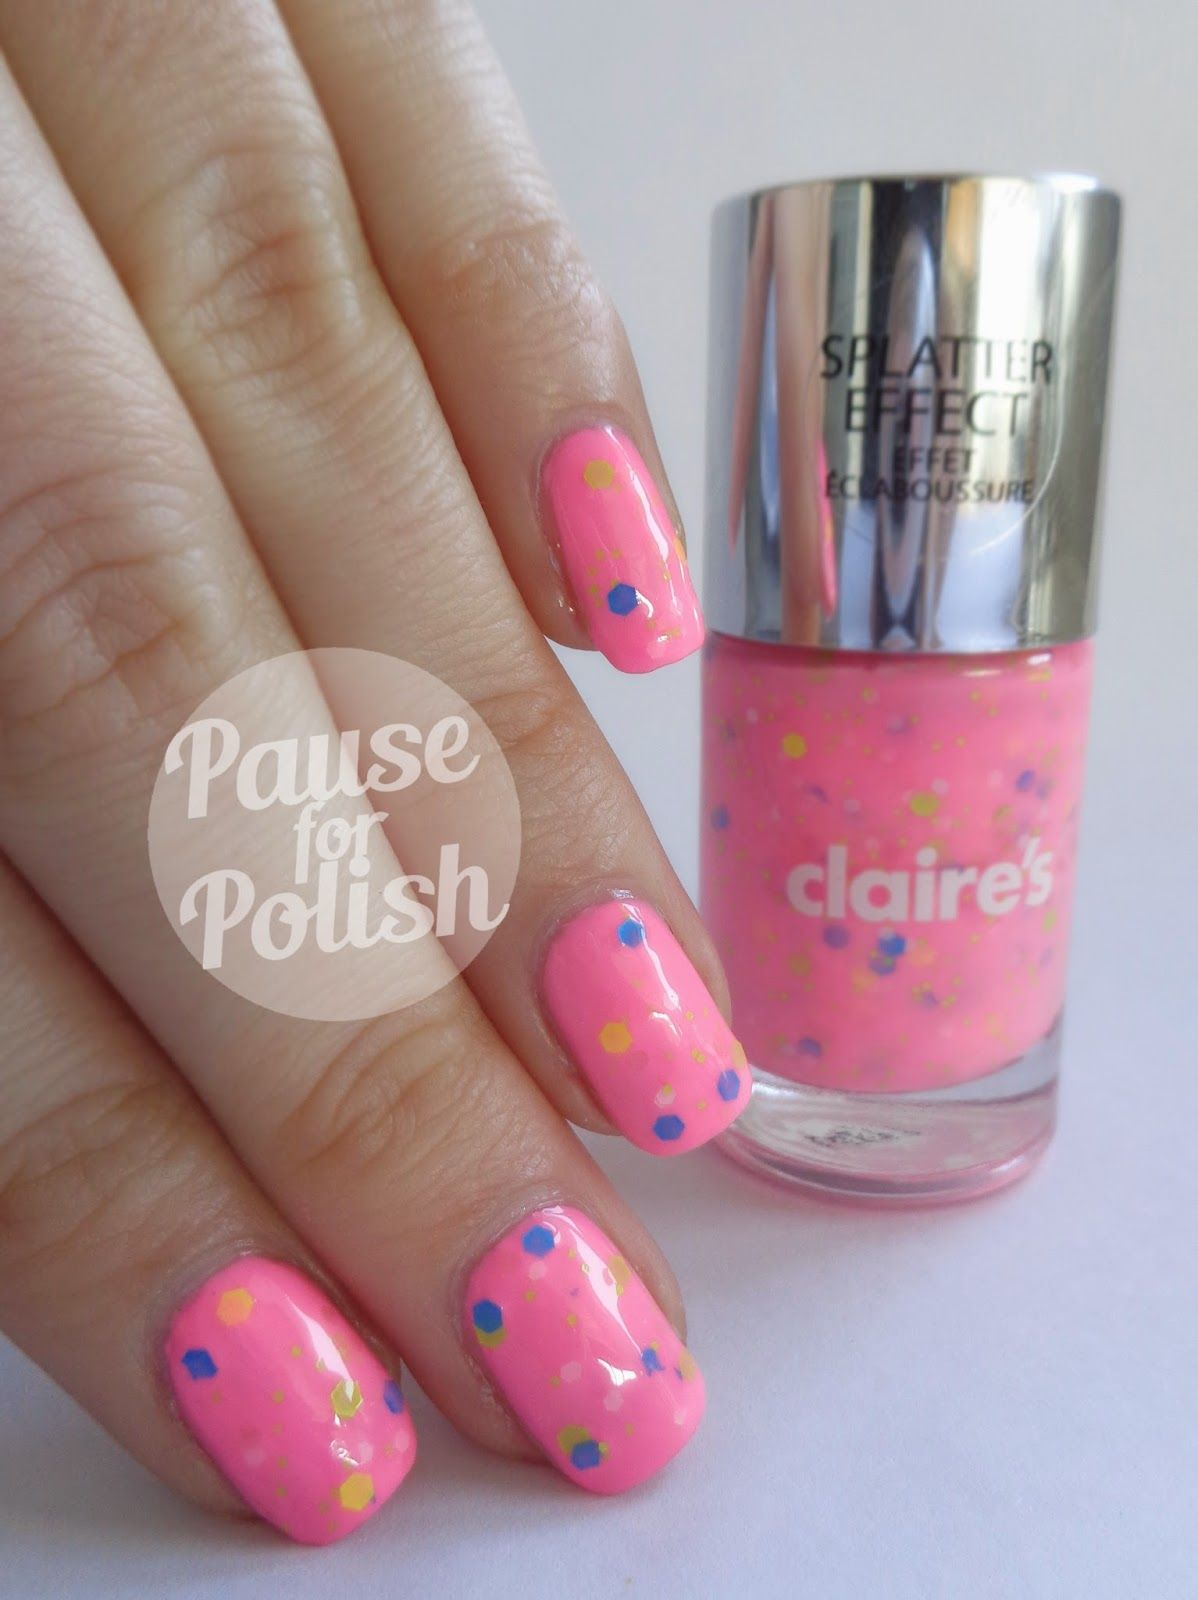 Pause For Polish Claires Accessories